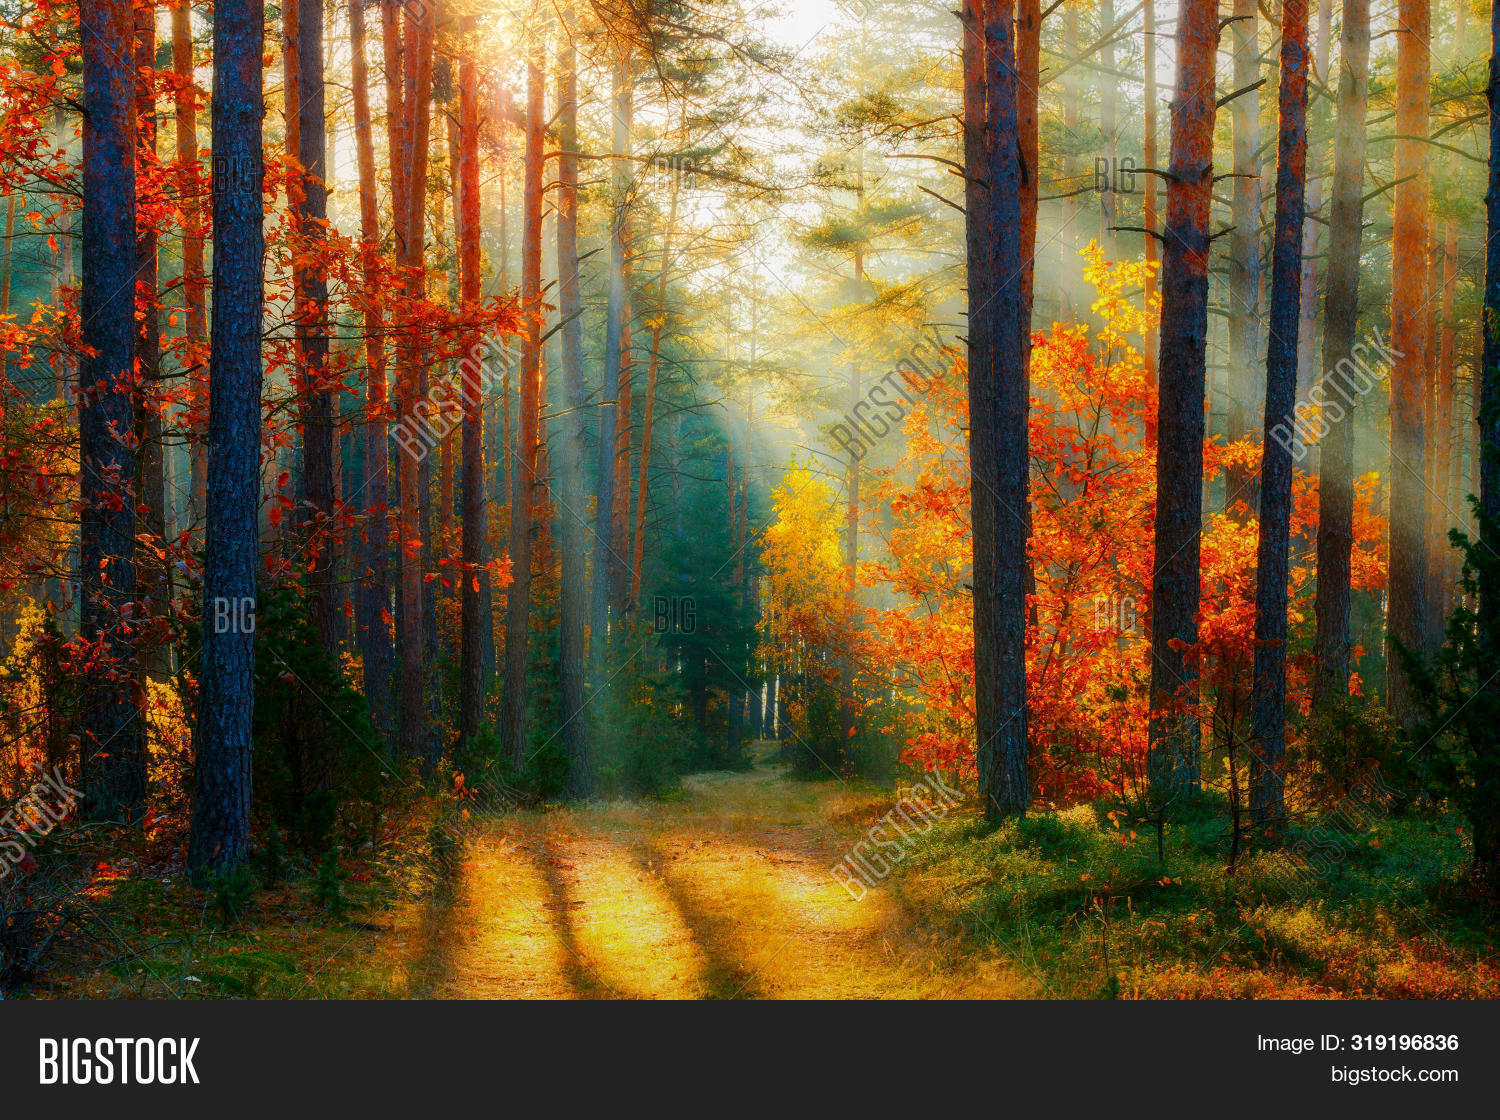 Autumn Forest Image Photo Free Trial Bigstock